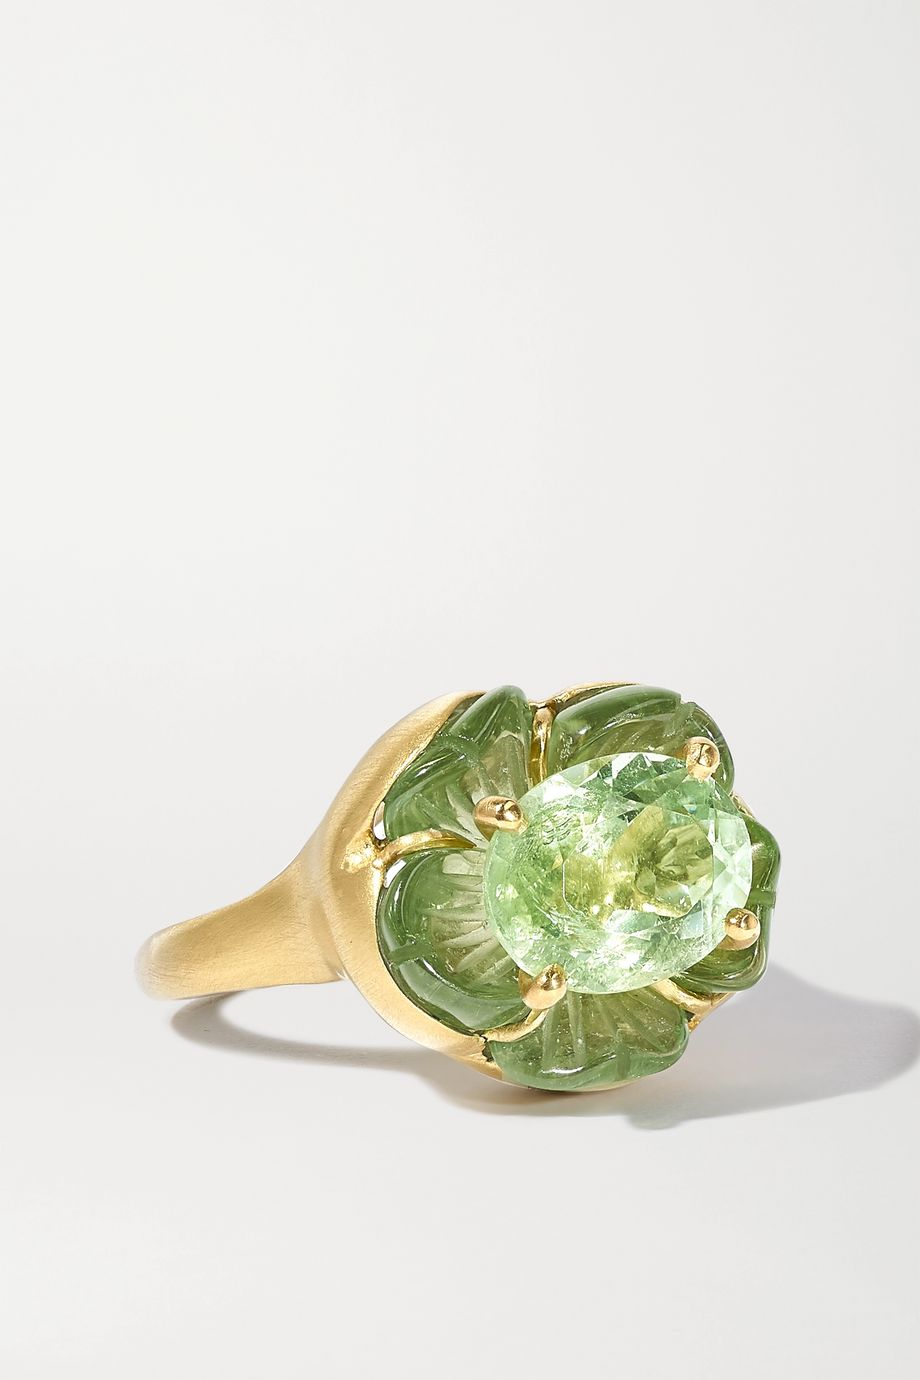 Irene Neuwirth Tropical Flower 18-karat gold tourmaline ring